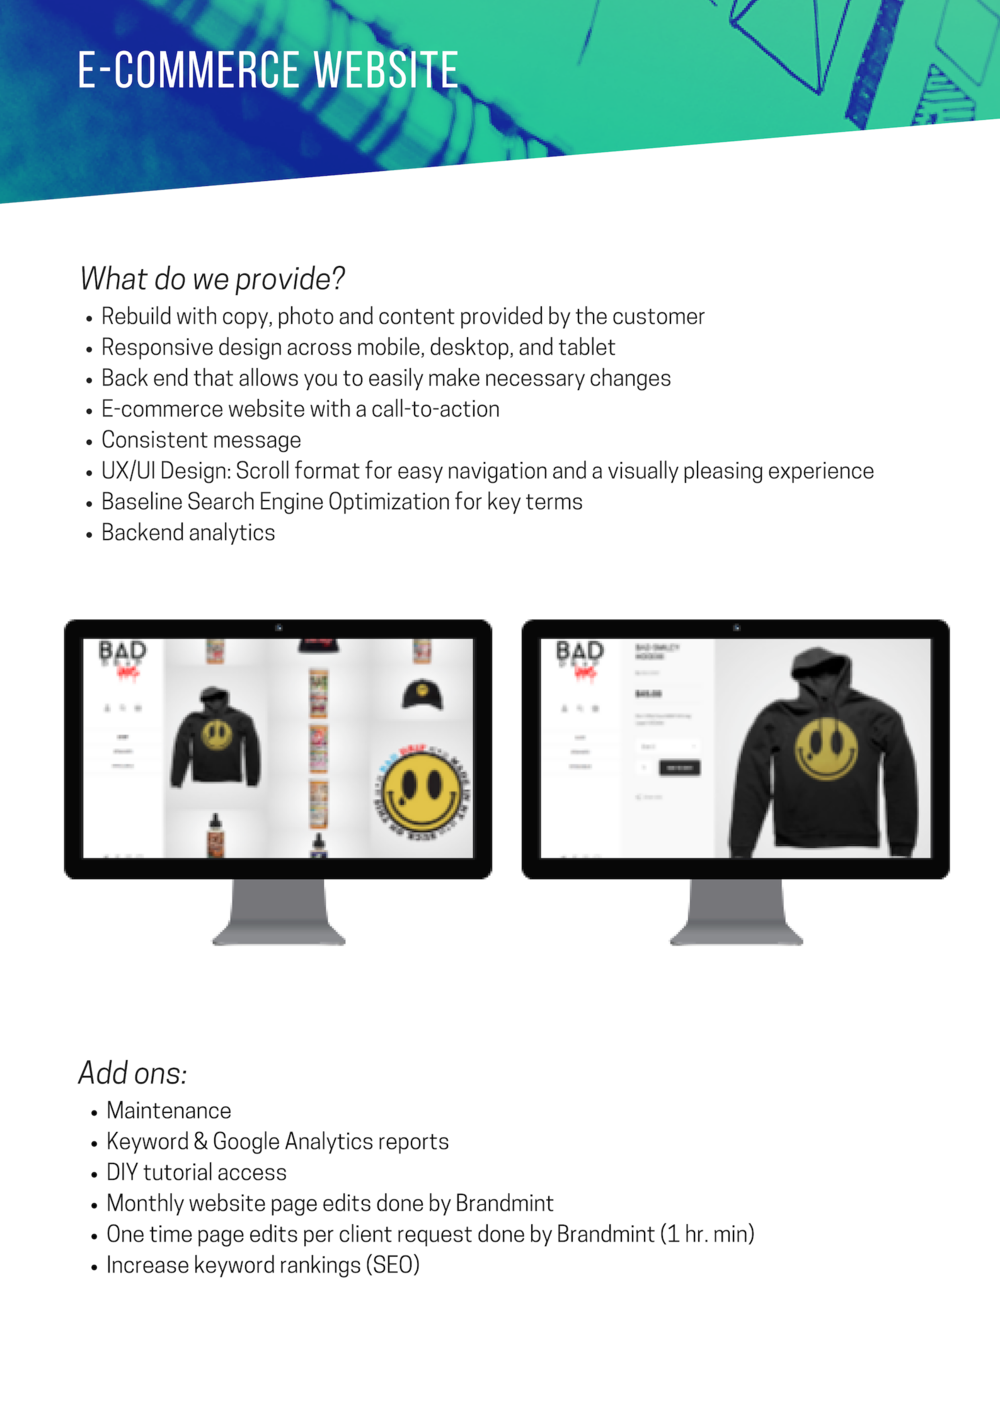 E-Commerce Website - Selling Points: UX/UI focus based on purchase habits of your potential customer. Websites are call-to-action driven with quick and easy check out.